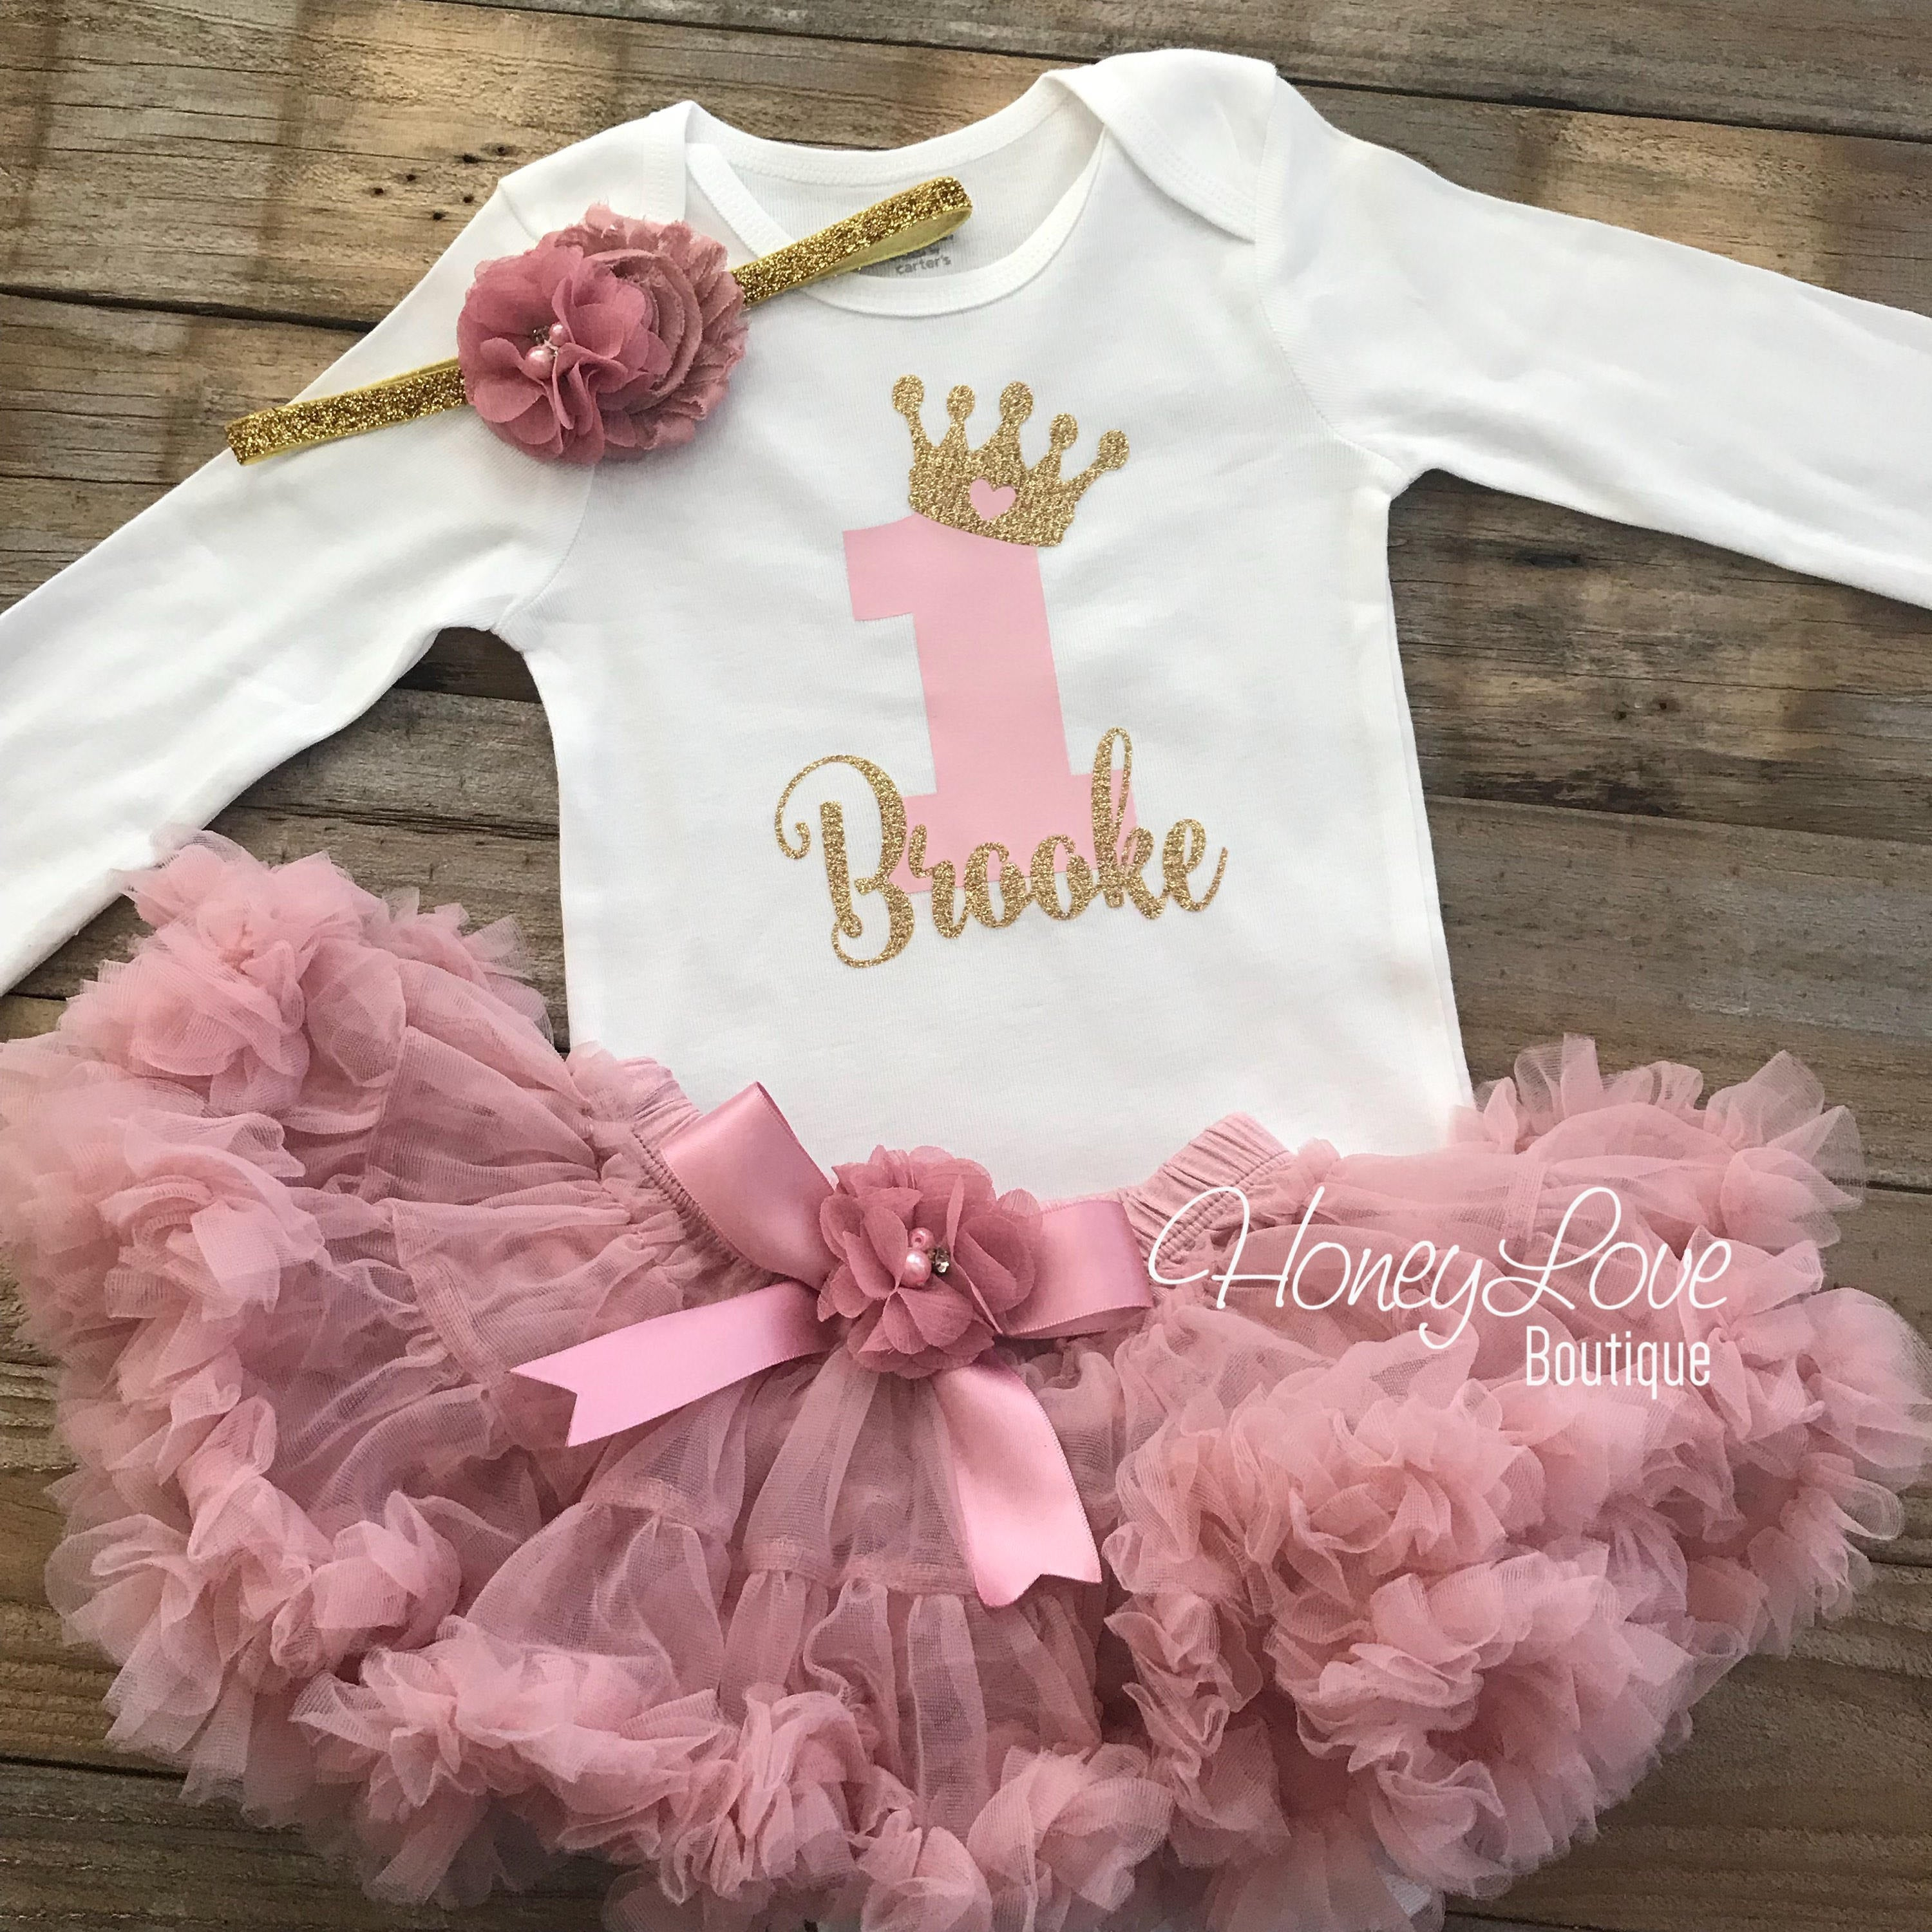 1st Birthday Princess Dress.Personalized 1st Birthday Princess Outfit Gold Glitter And Vintage Pink Embellished Pettiskirt